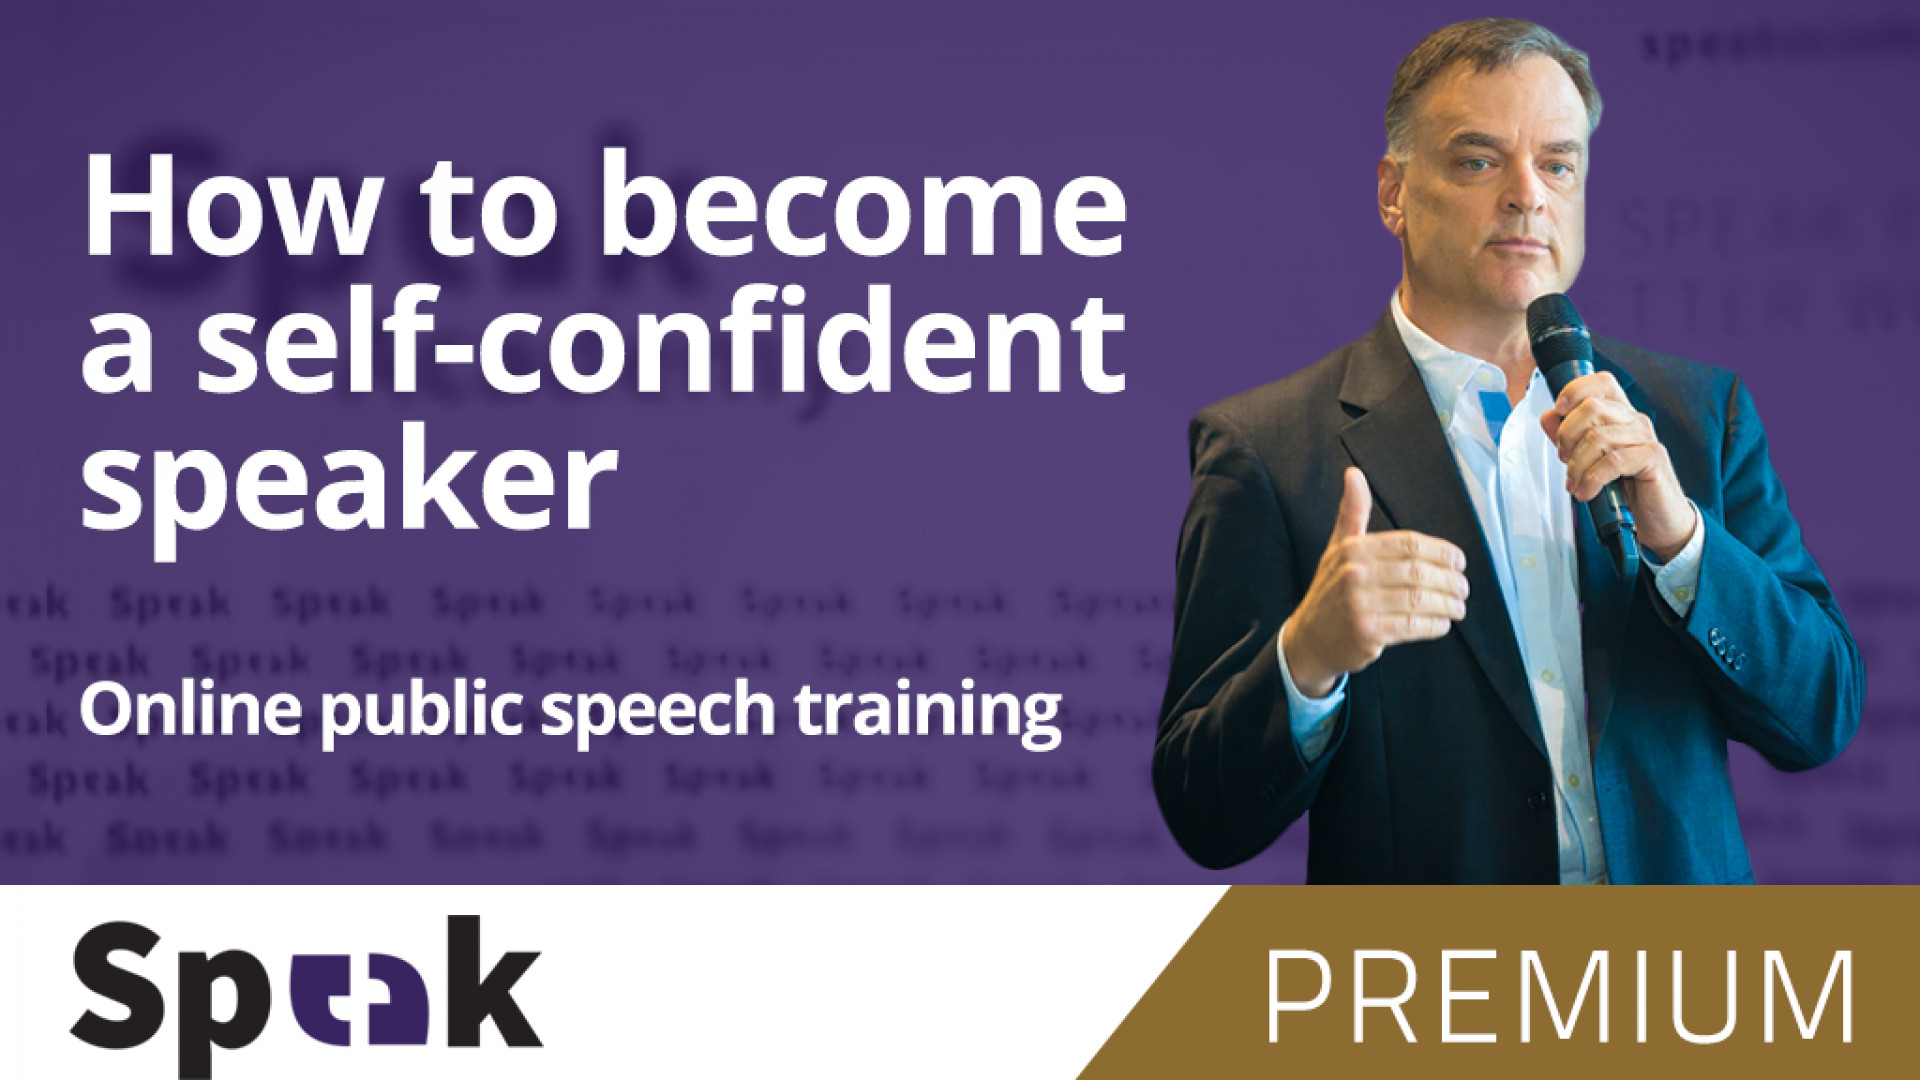 Premium complete public speaking course